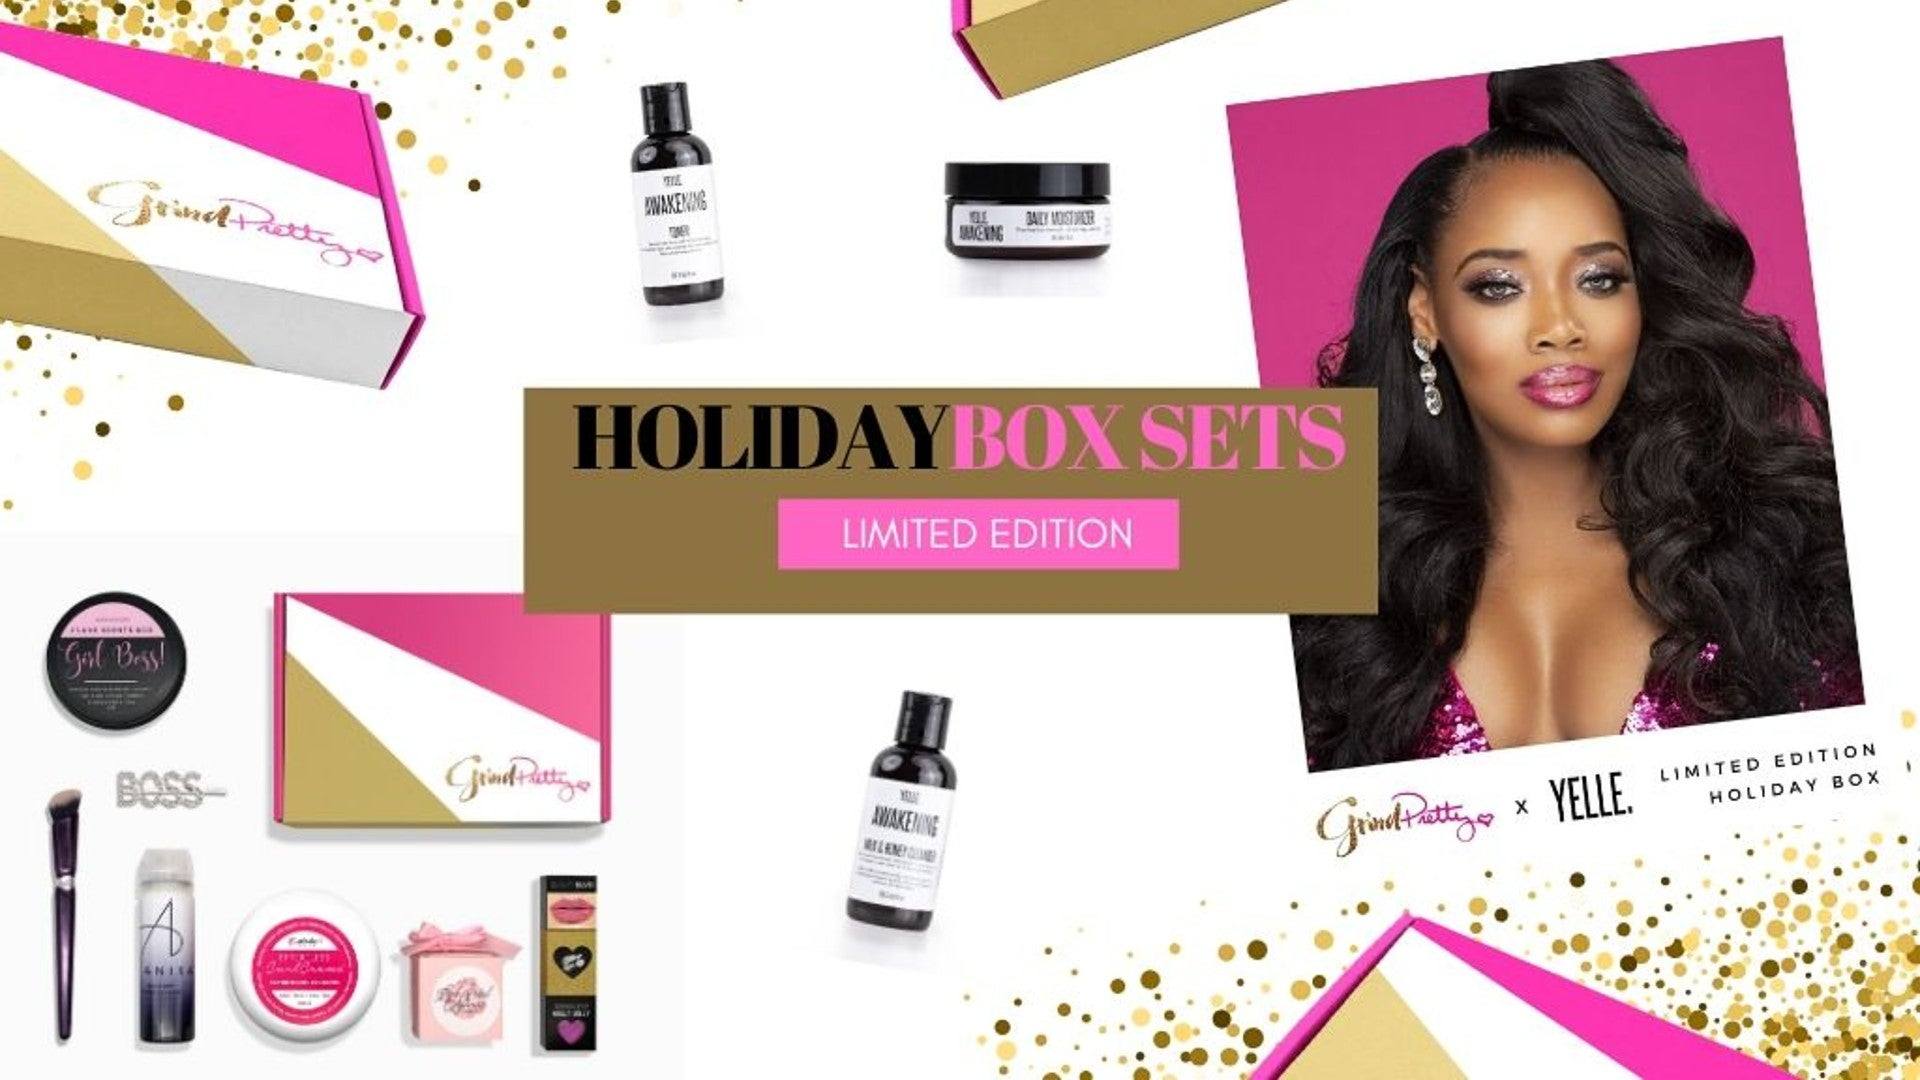 Yandy Smith Teams Up With Grind Pretty For Holiday Box